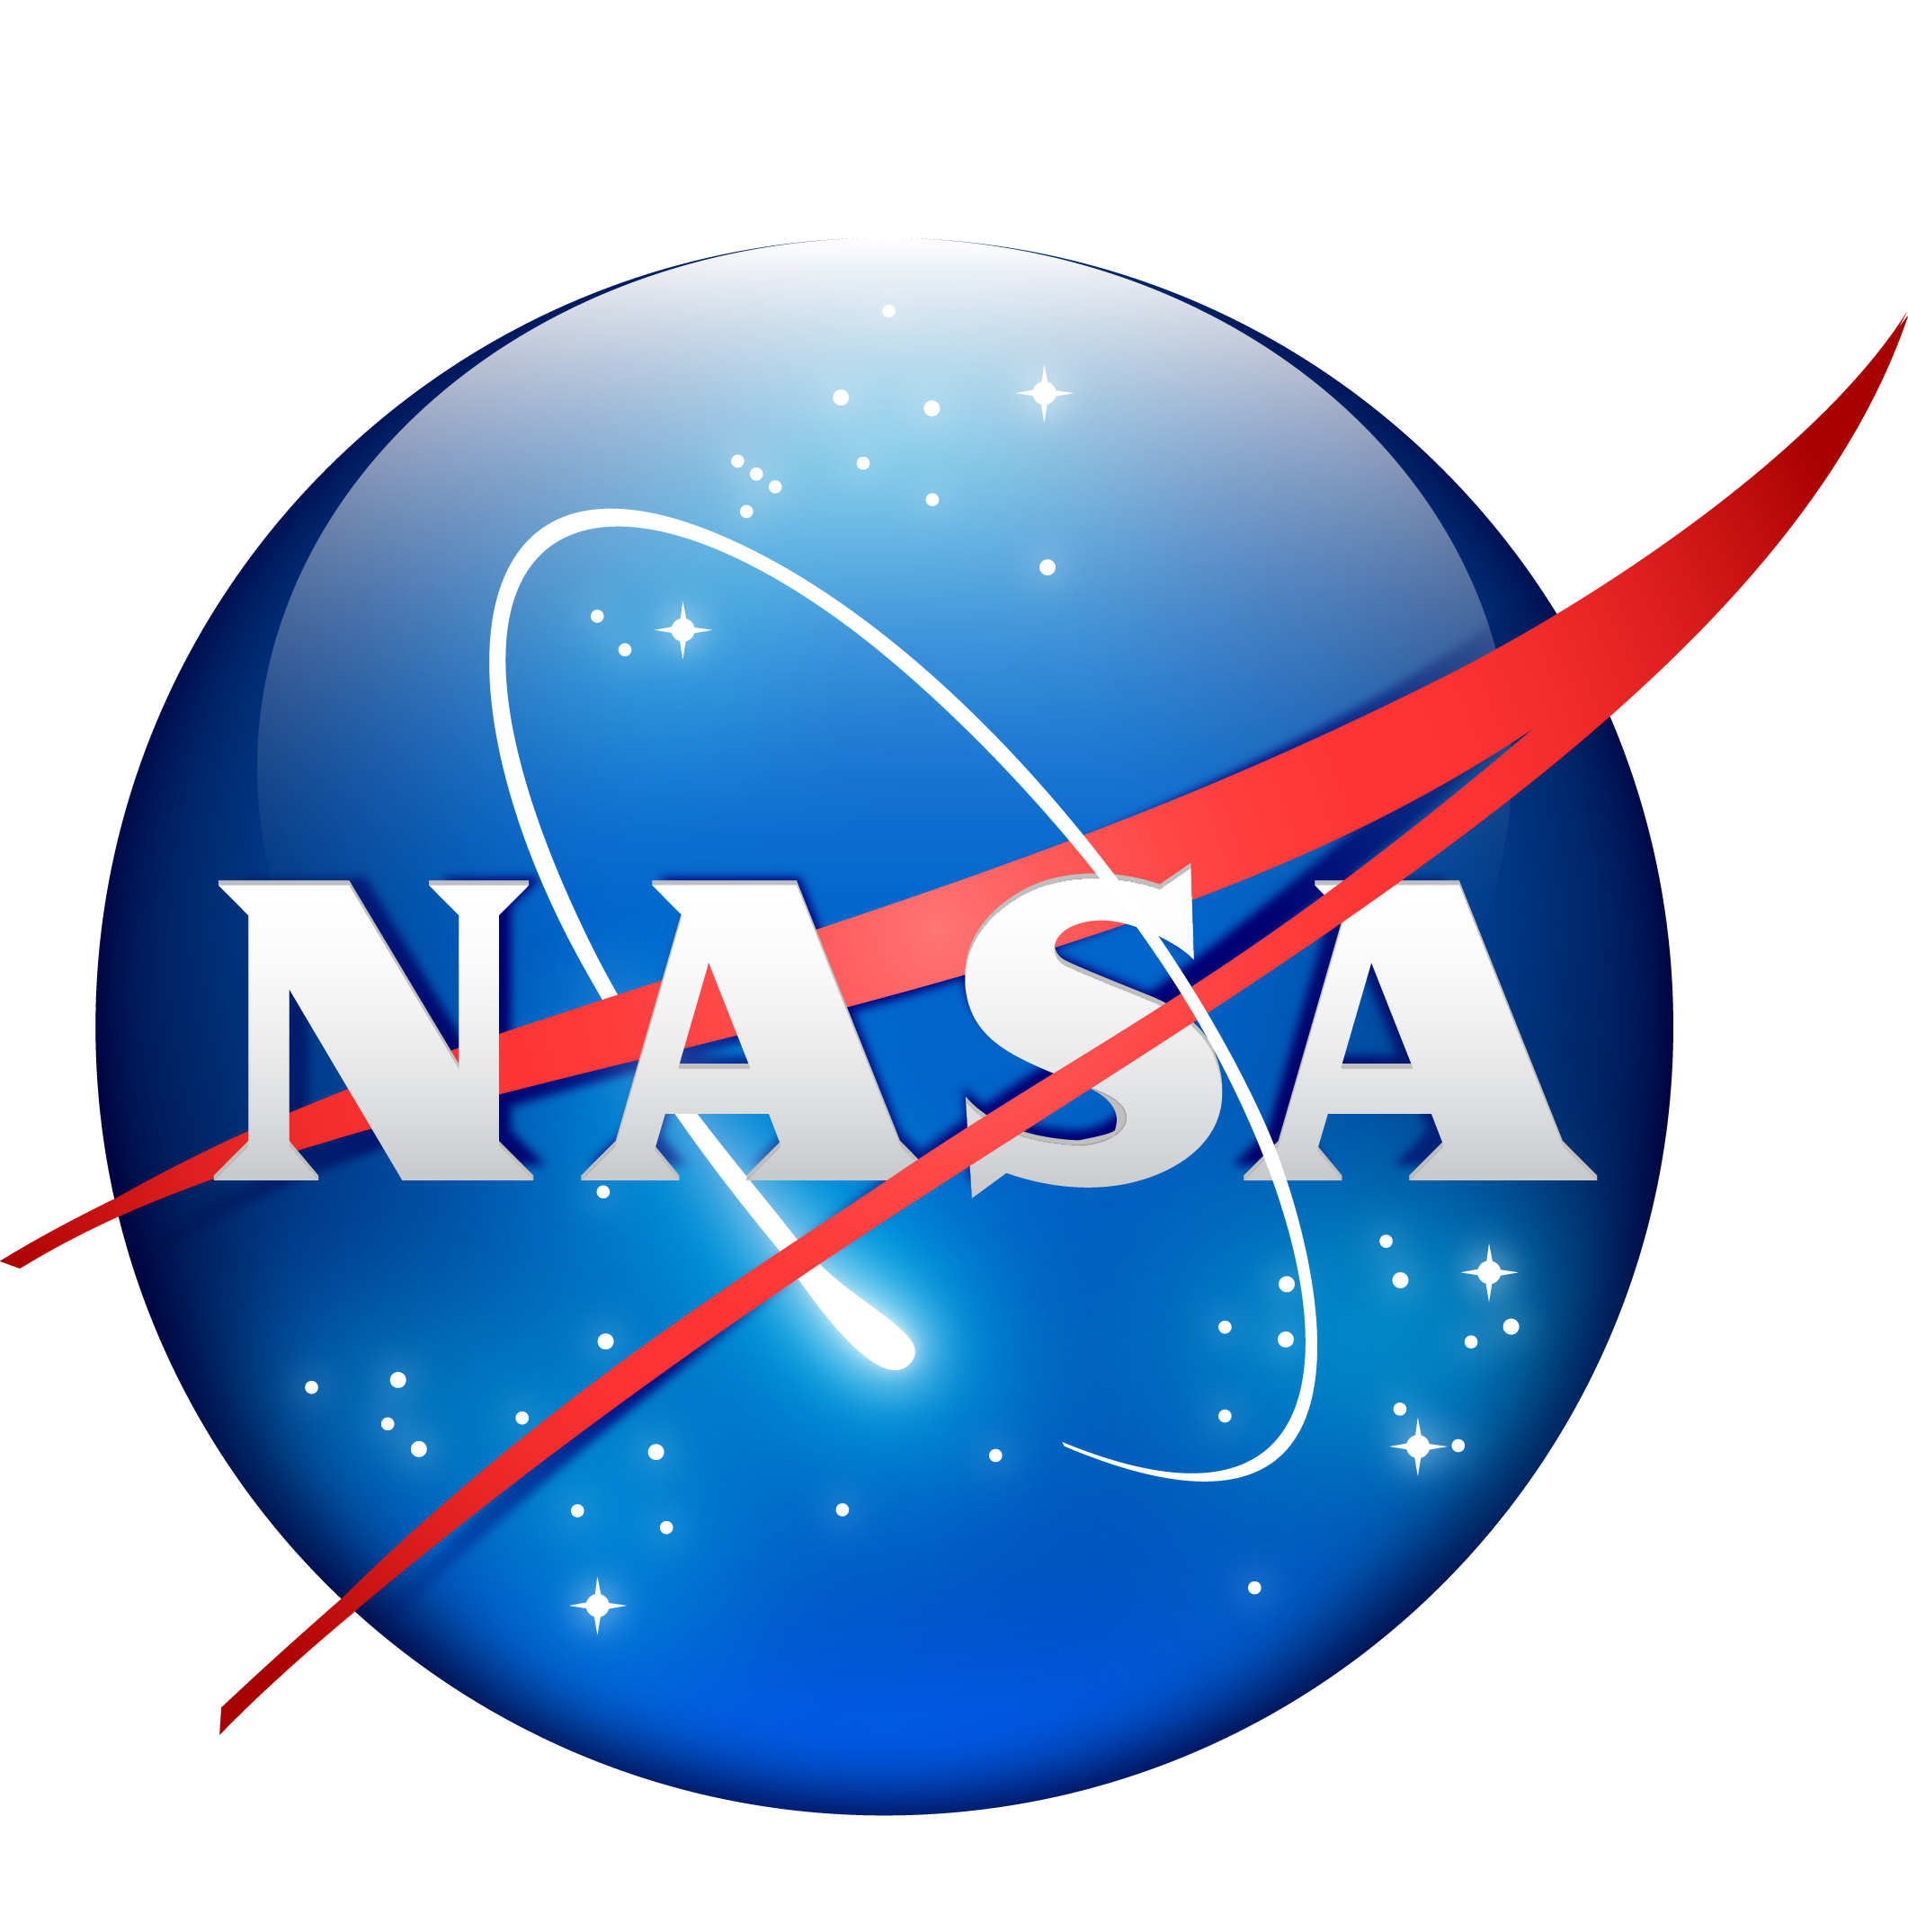 Nasa Logo Transparent Background Page 2 Pics About Space